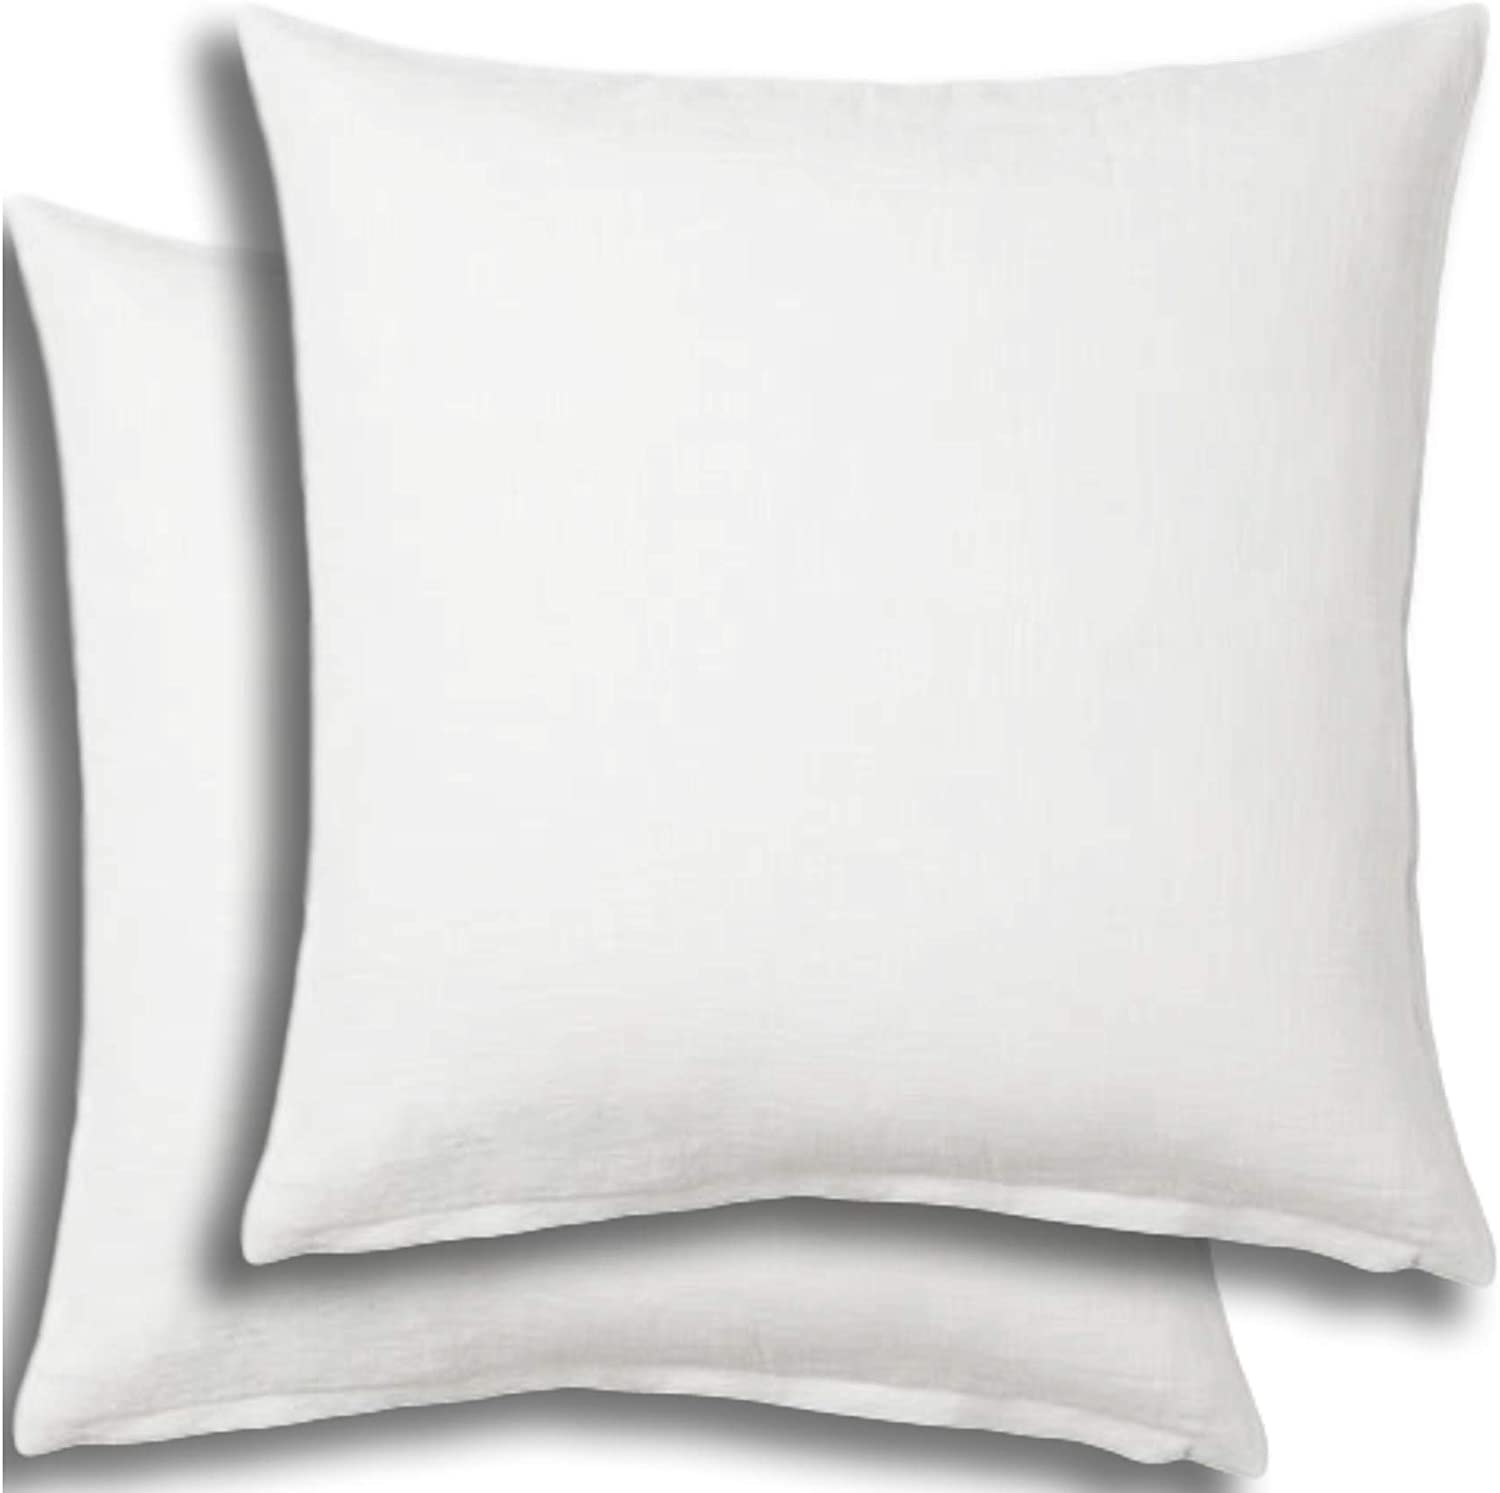 Set of 2 - Pillow Insert 18x18 Decorative Throw Pillow Inserts - Euro Sham Stuffer for Sofa Bed Couch Square White Form 2 Pack - Hypoallergenic Machine Washable and Dry Polyester - Made in USA